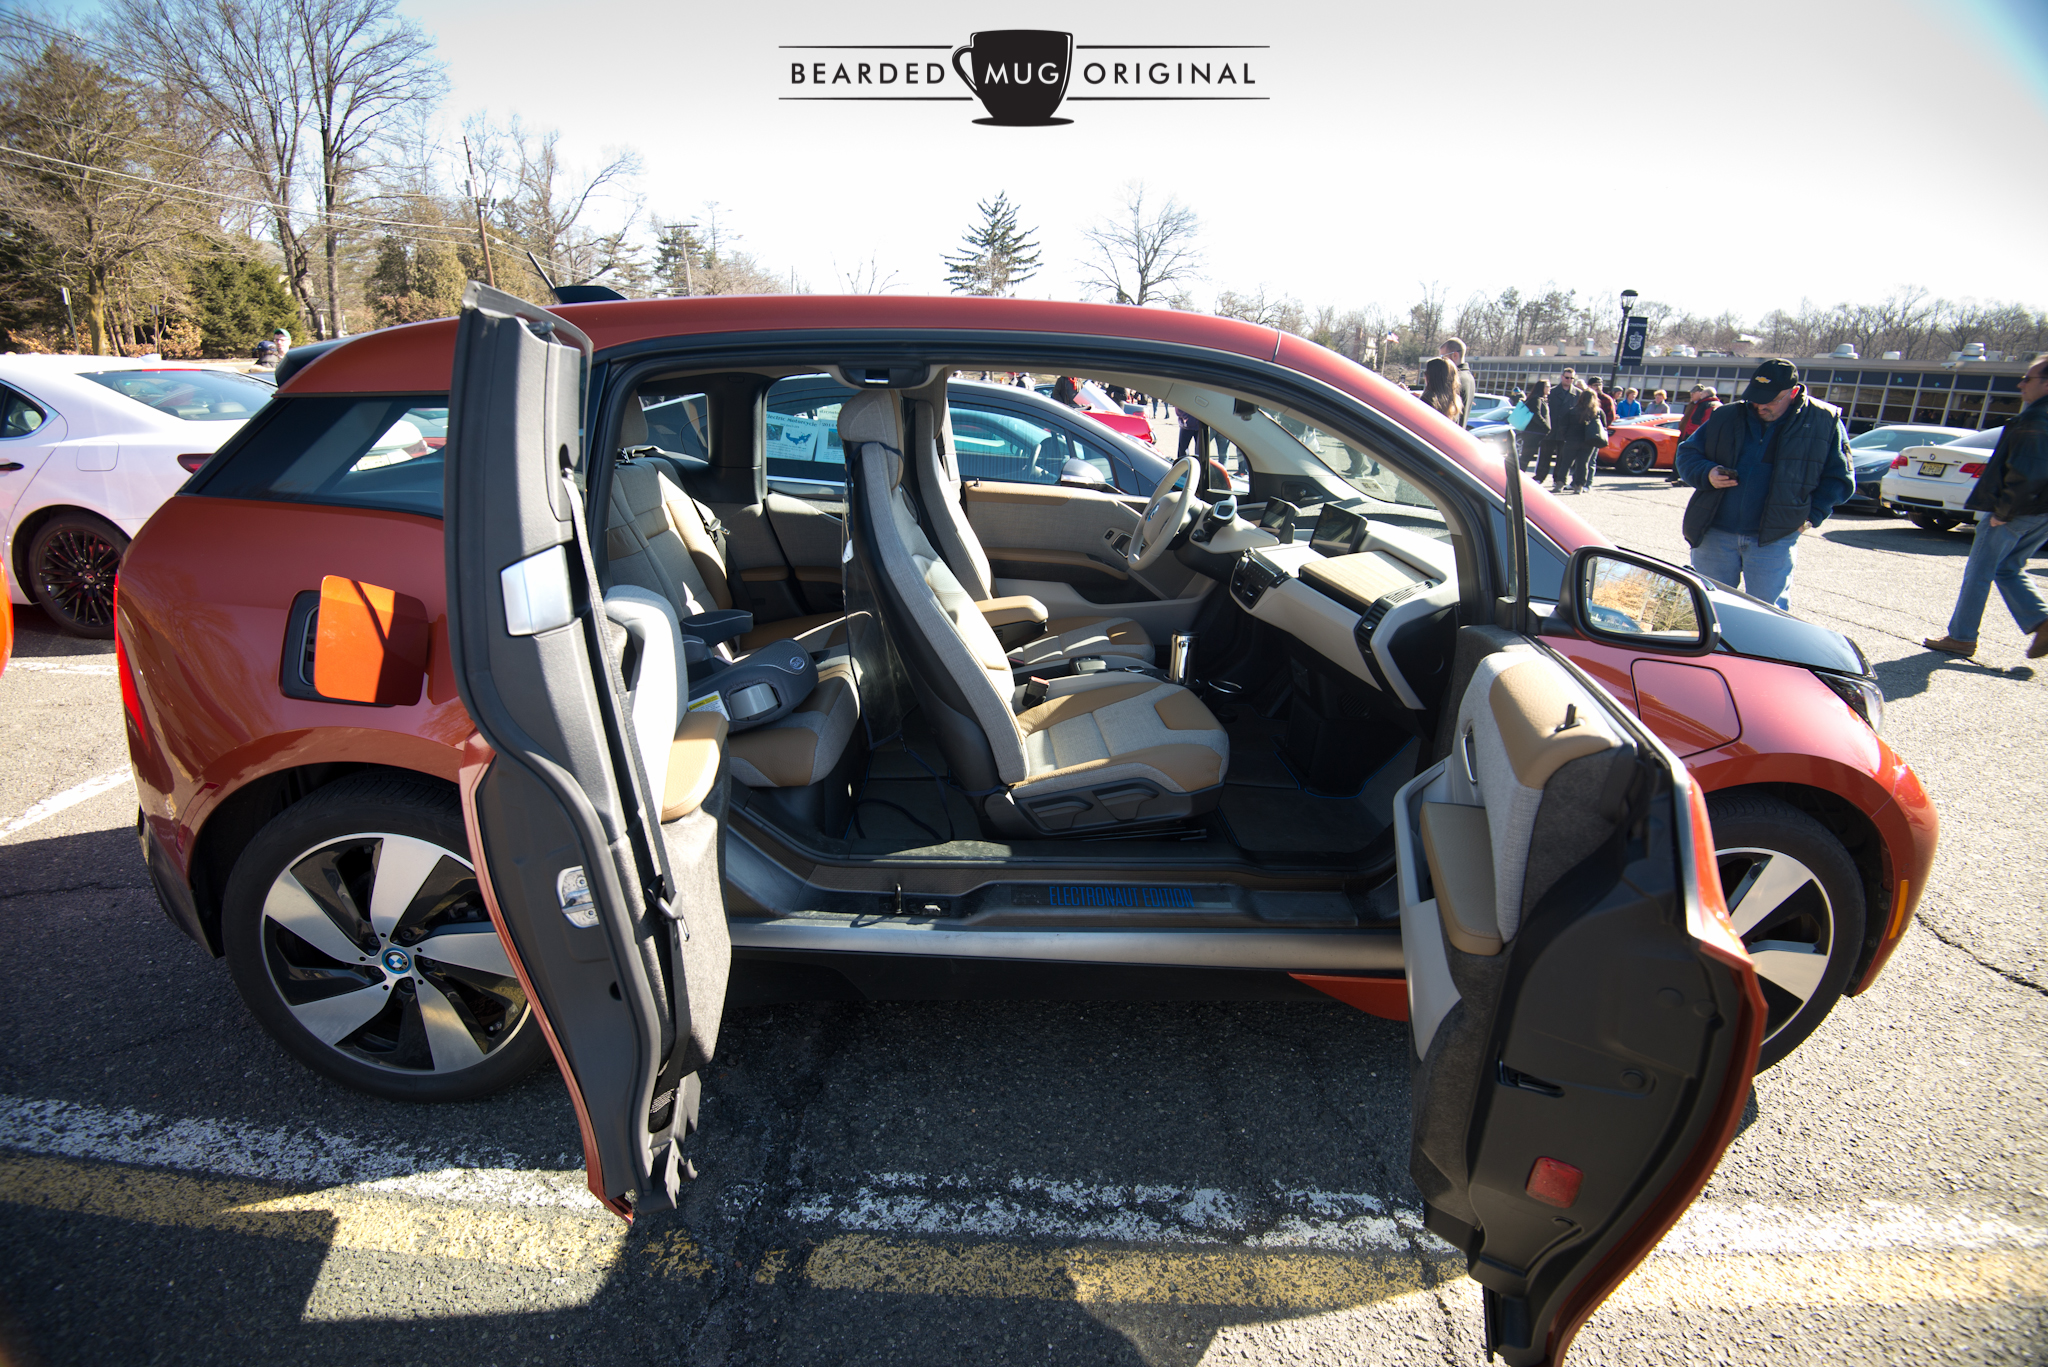 Chris always has an open door policy fortalking about his i3.